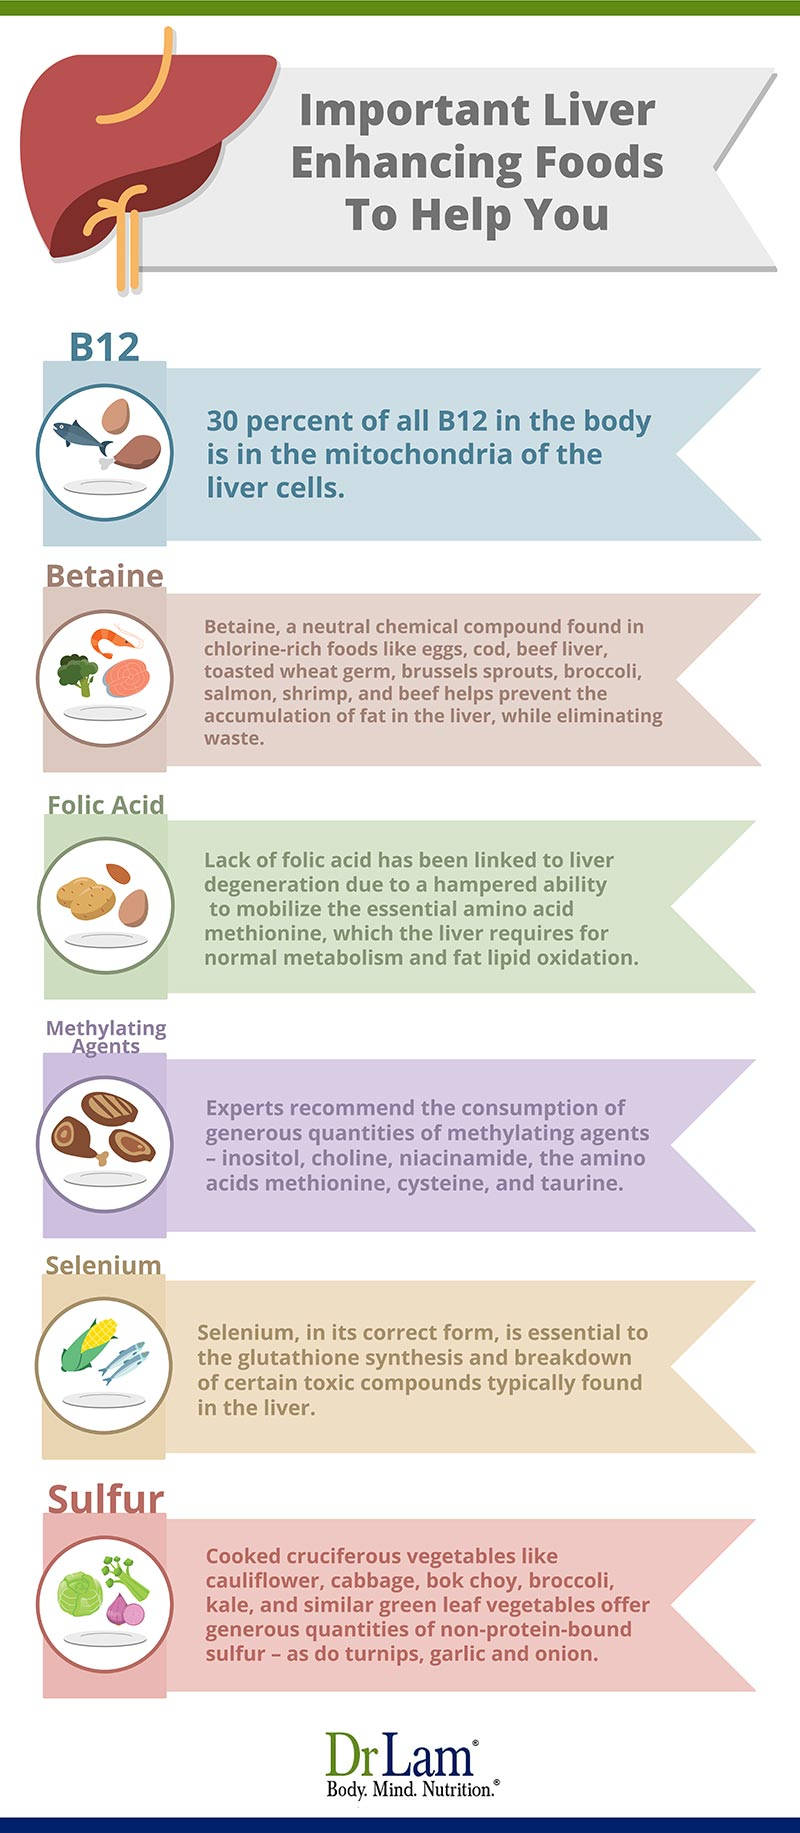 Check out this easy to understand infographic about the important liver enhancing foods to help you